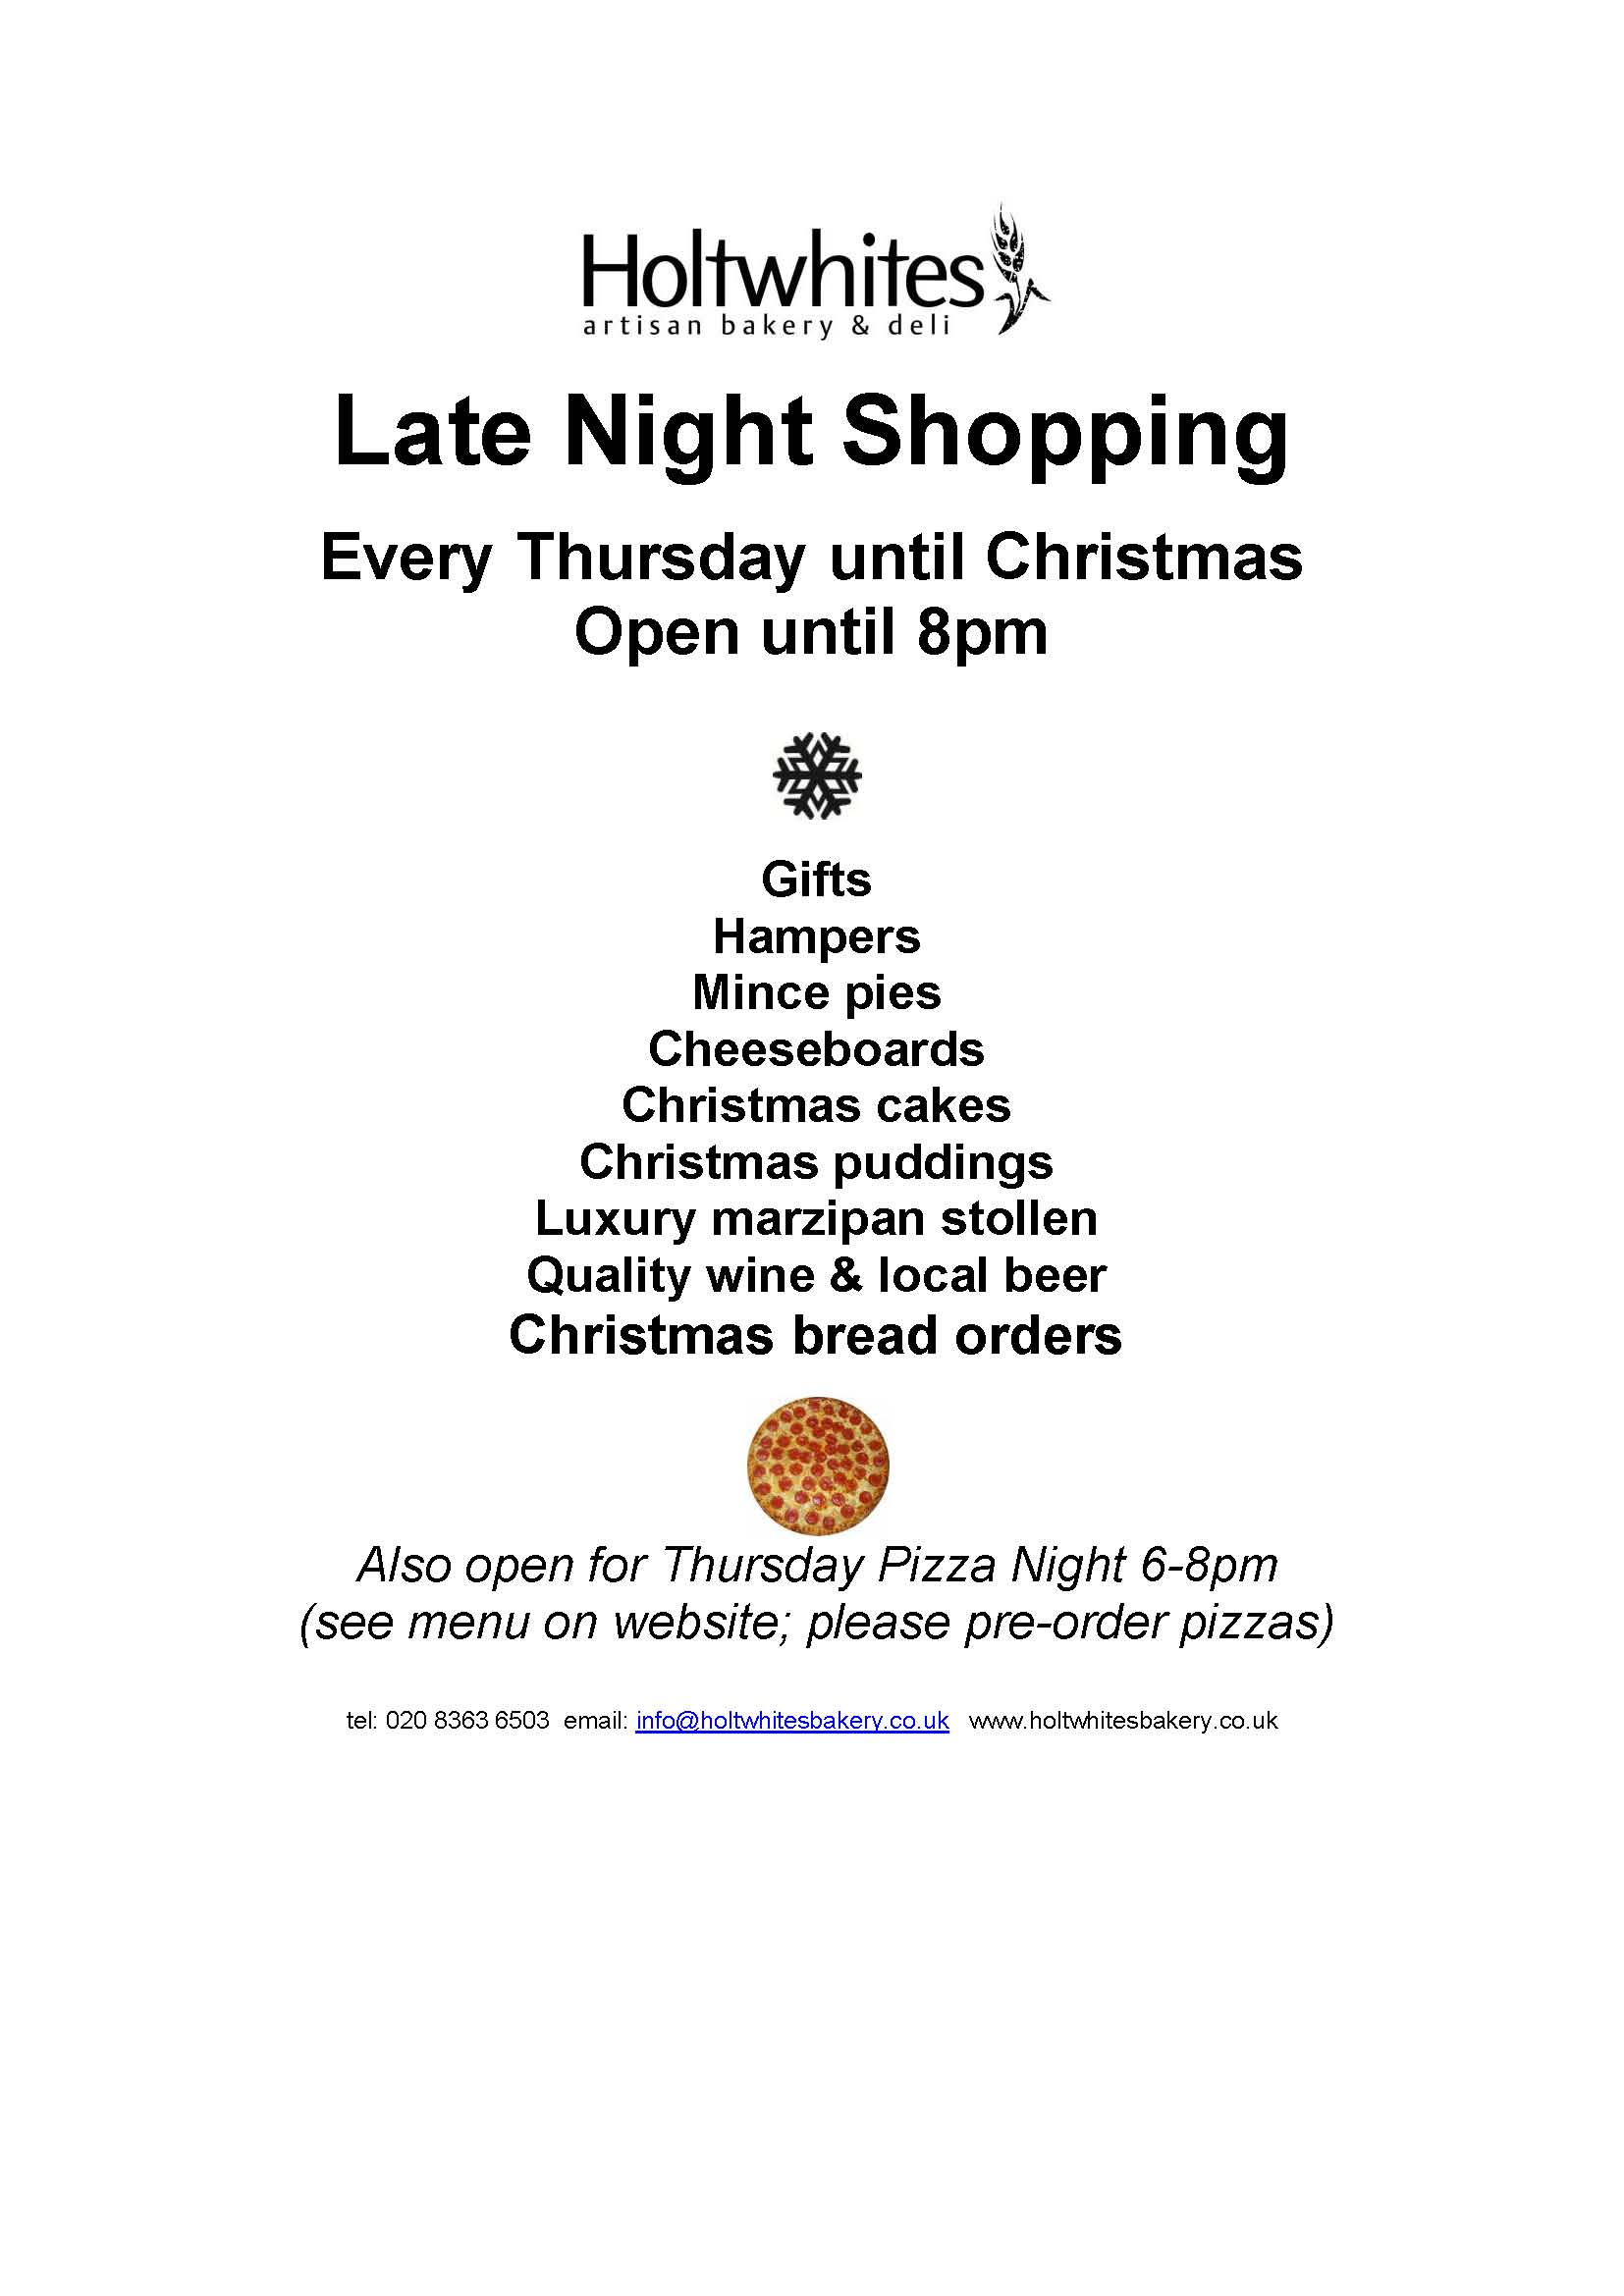 Late night shopping on Thursdays until Christmas